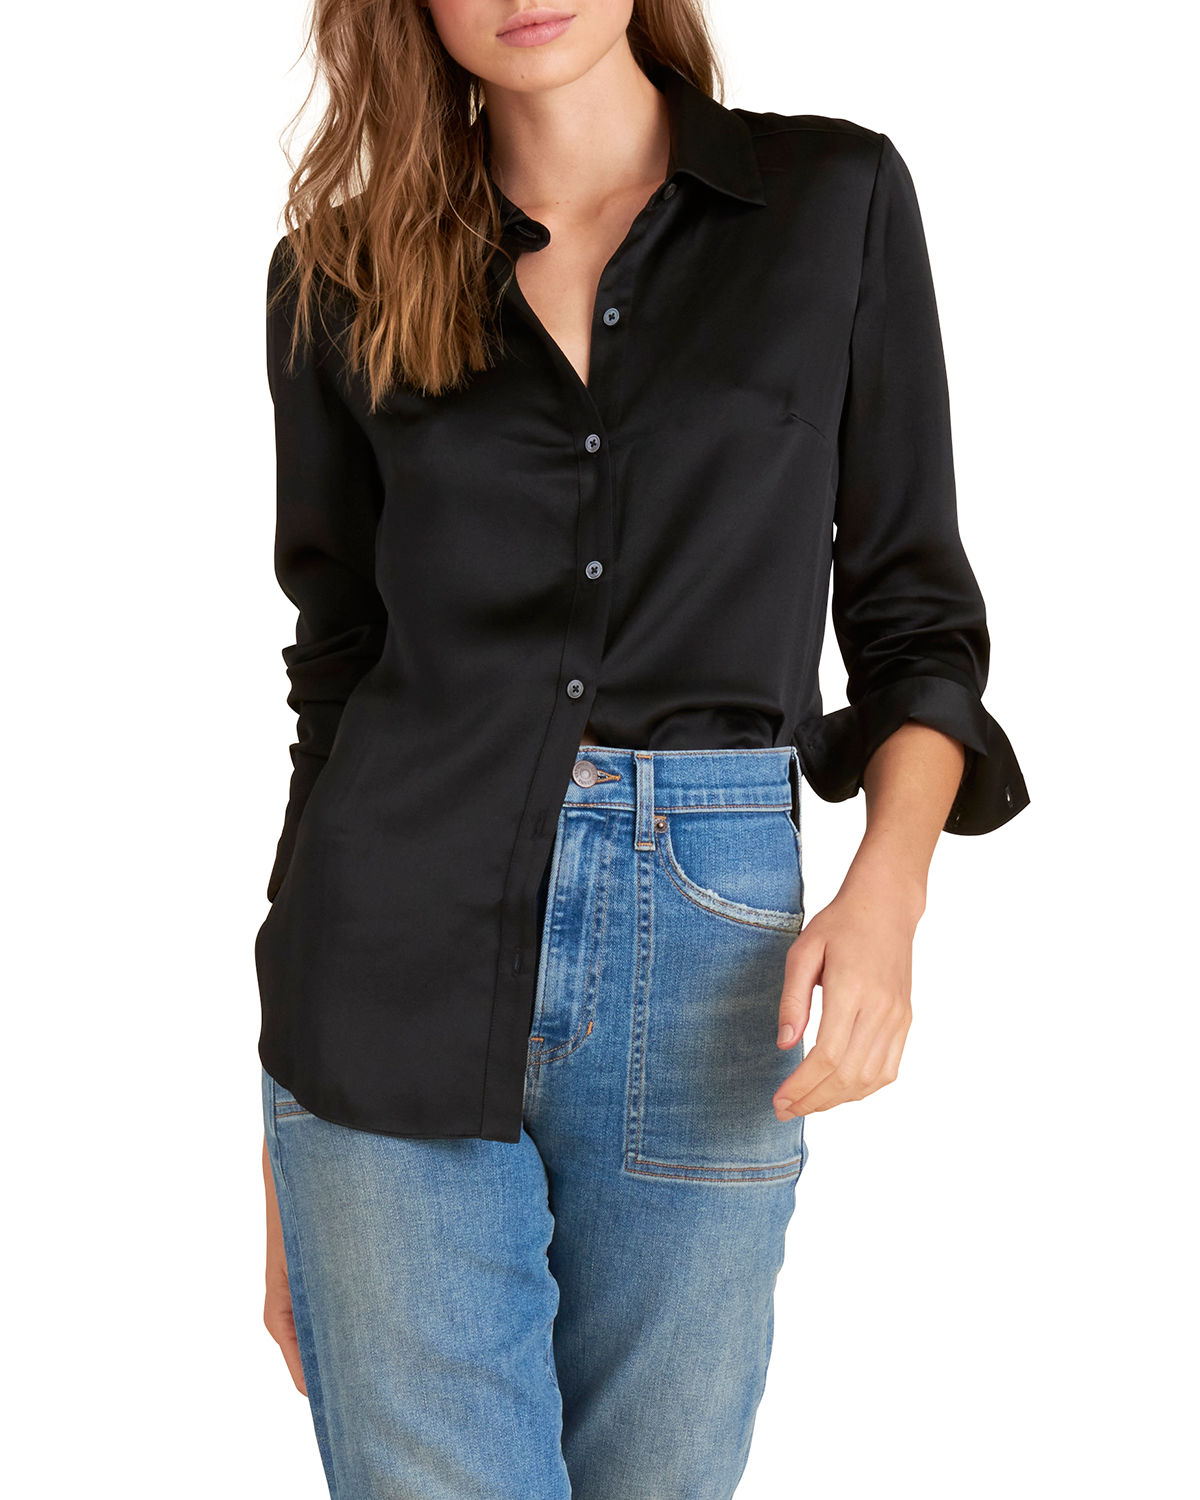 Veronica Beard Silks MORGANE BUTTON-DOWN SILK TUNIC SHIRT